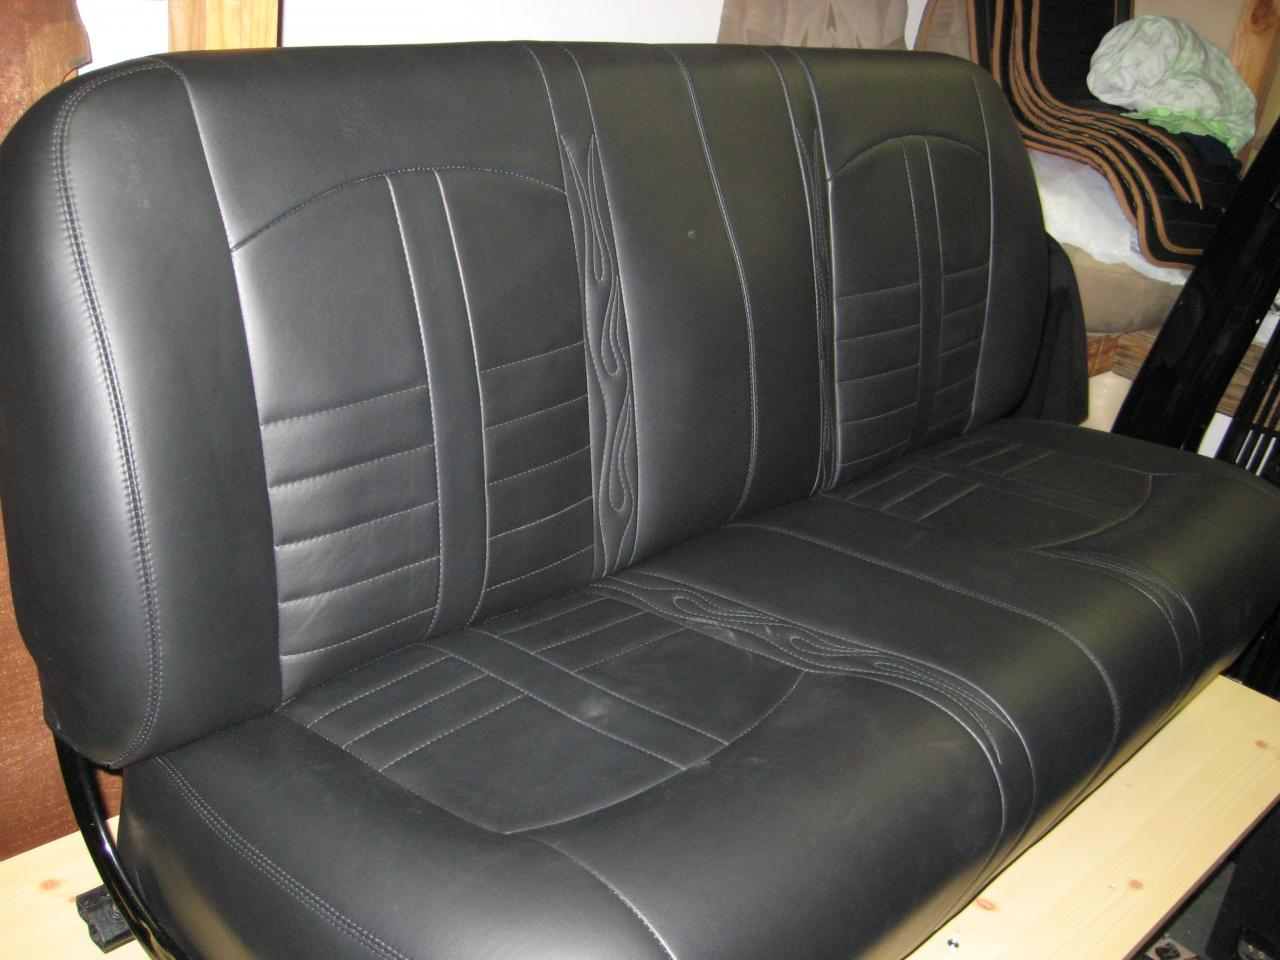 Chevy Truck Bench Seat submited images.